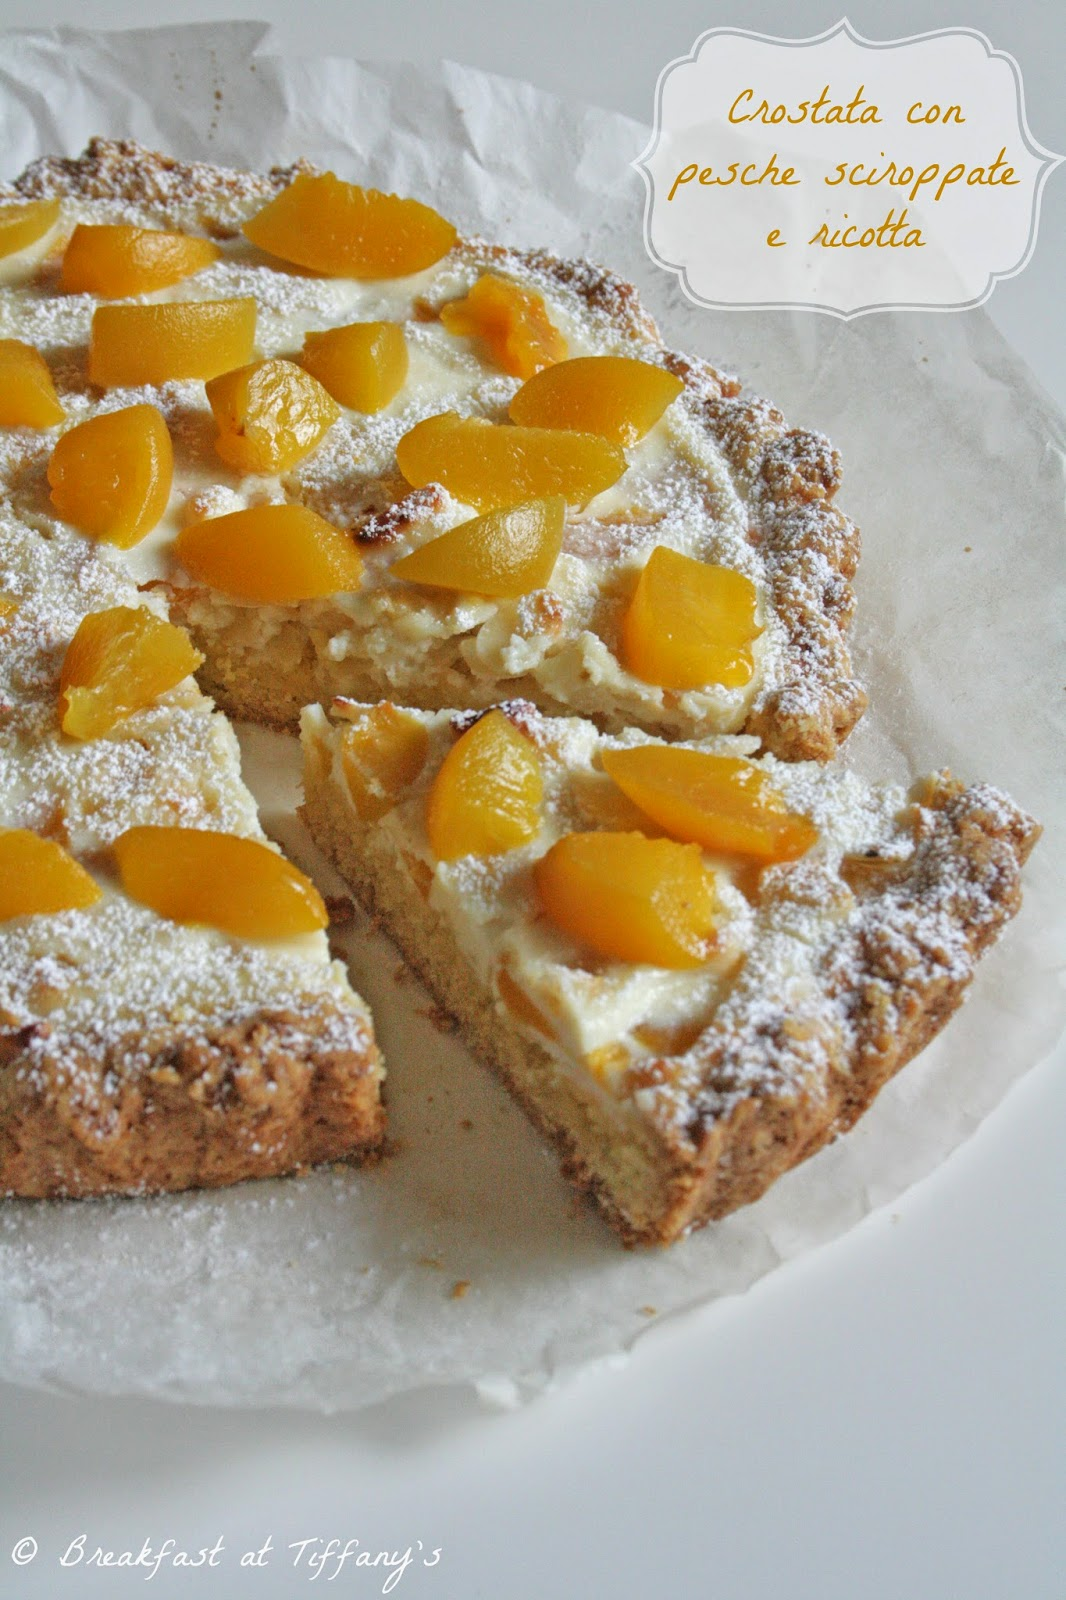 crostata con pesche sciroppate e ricotta / tart with peaches in syrup and ricotta cheese